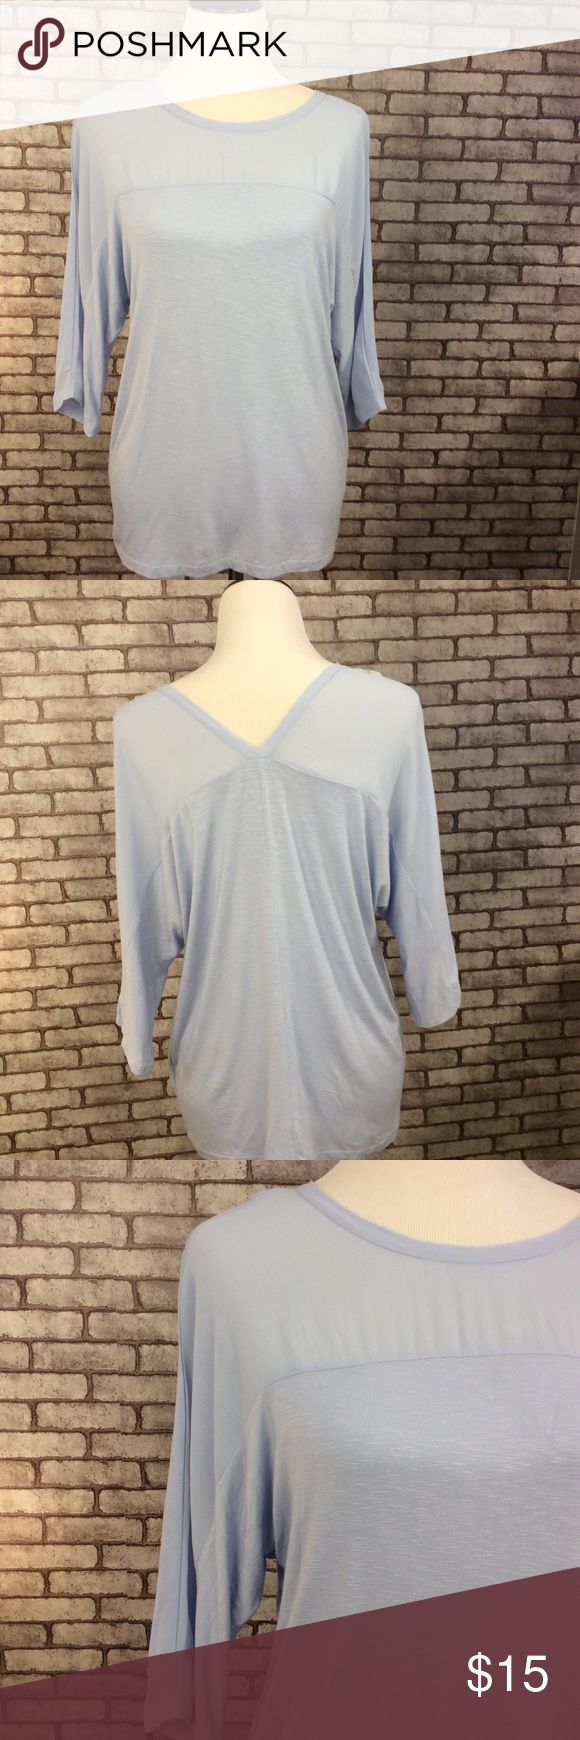 Anthropologie Dolan top These is a beautiful top, gently used but great condition. There are a few pin size spots as pictured. Has a v neck back, self 100% viscose contrast 95% rayon 5% spandex, dry clean. No rips or pilling. ⭐️ no trading or modeling ⭐️ Anthropologie Tops Blouses